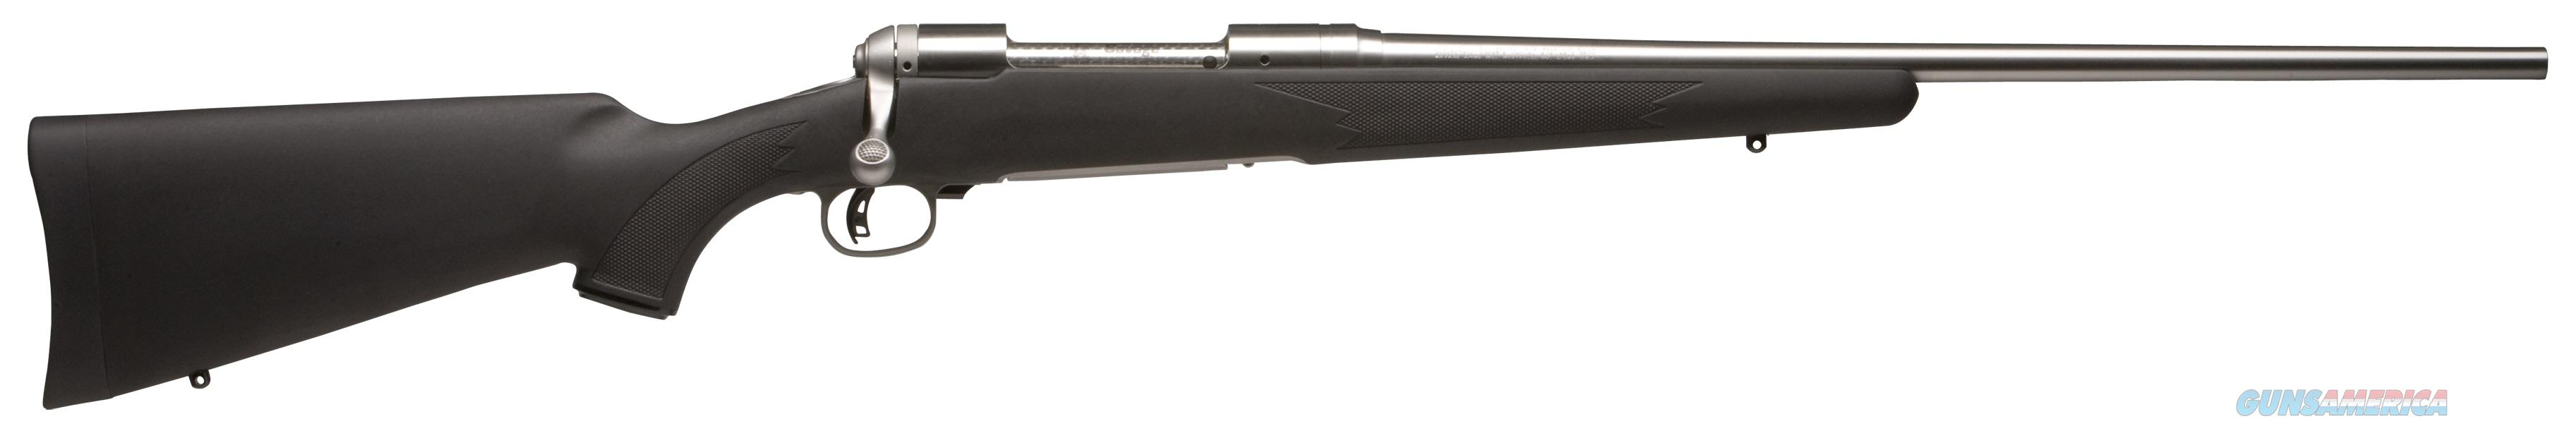 Savage Mdl 16 .260 Remington    Guns > Rifles > Savage Rifles > Accutrigger Models > Sporting